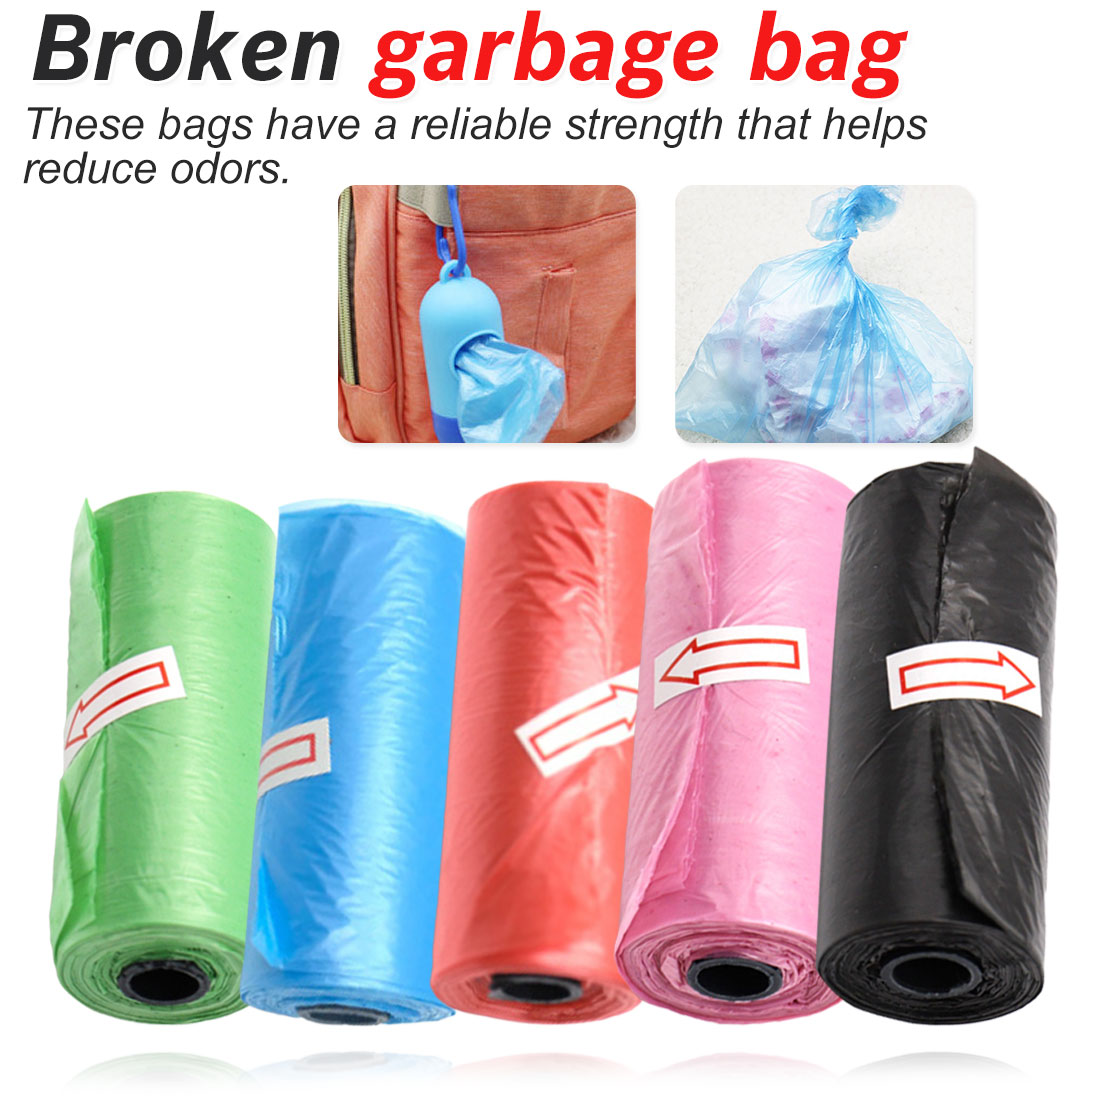 Waste Garbage <font><b>Bags</b></font> Pet Dog Infant <font><b>Baby</b></font> <font><b>Poop</b></font> <font><b>Bag</b></font> Practical <font><b>Poop</b></font> <font><b>Bags</b></font> Holder Pets Trash Cleaning Supplies <font><b>Baby</b></font> Diaper <font><b>Bag</b></font> image